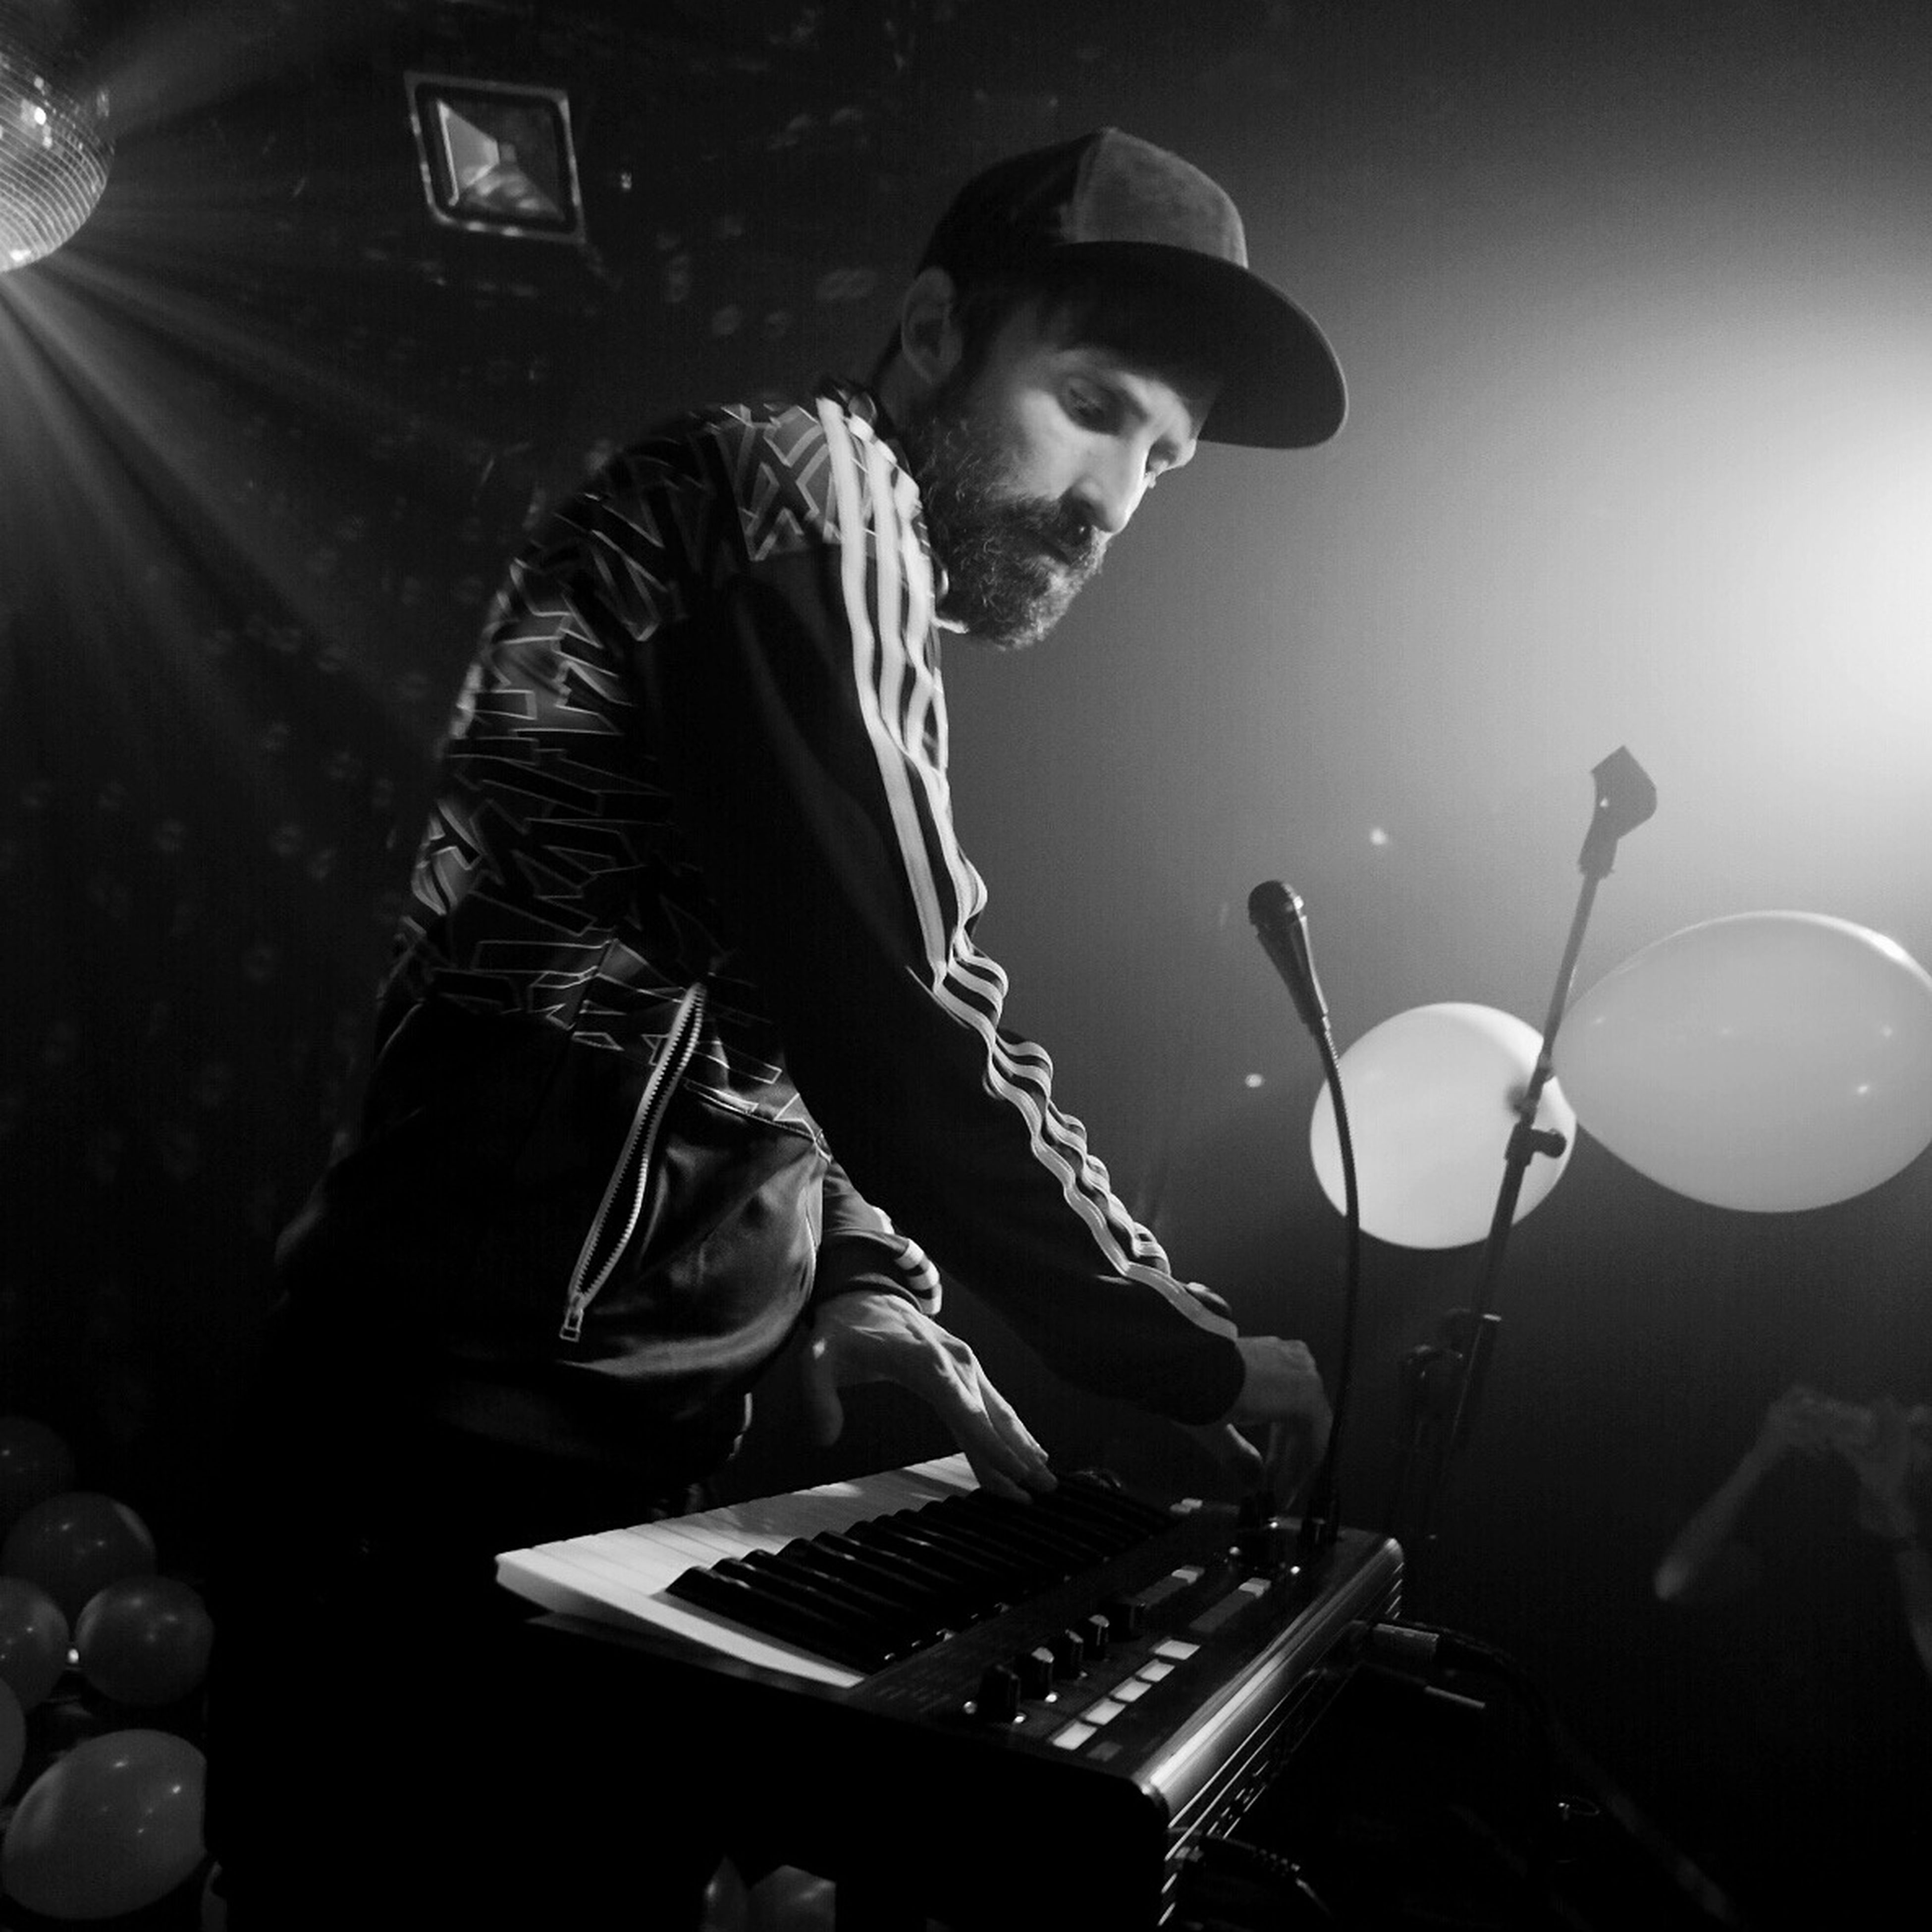 Fujifilm X - T10 Razzmatazz Party Party Time! Party Time Electronic Music Electronic Music Shots FUJIFILM X-T10 Tocadisco Djlife Fiesta Addidas_es Razzmatazzclubs Friends Enjoying Life Barcelona Dj SIMØNE en @razzmatazzclubs con @dirtydiskodj & @ndievaslern by Mr. kram